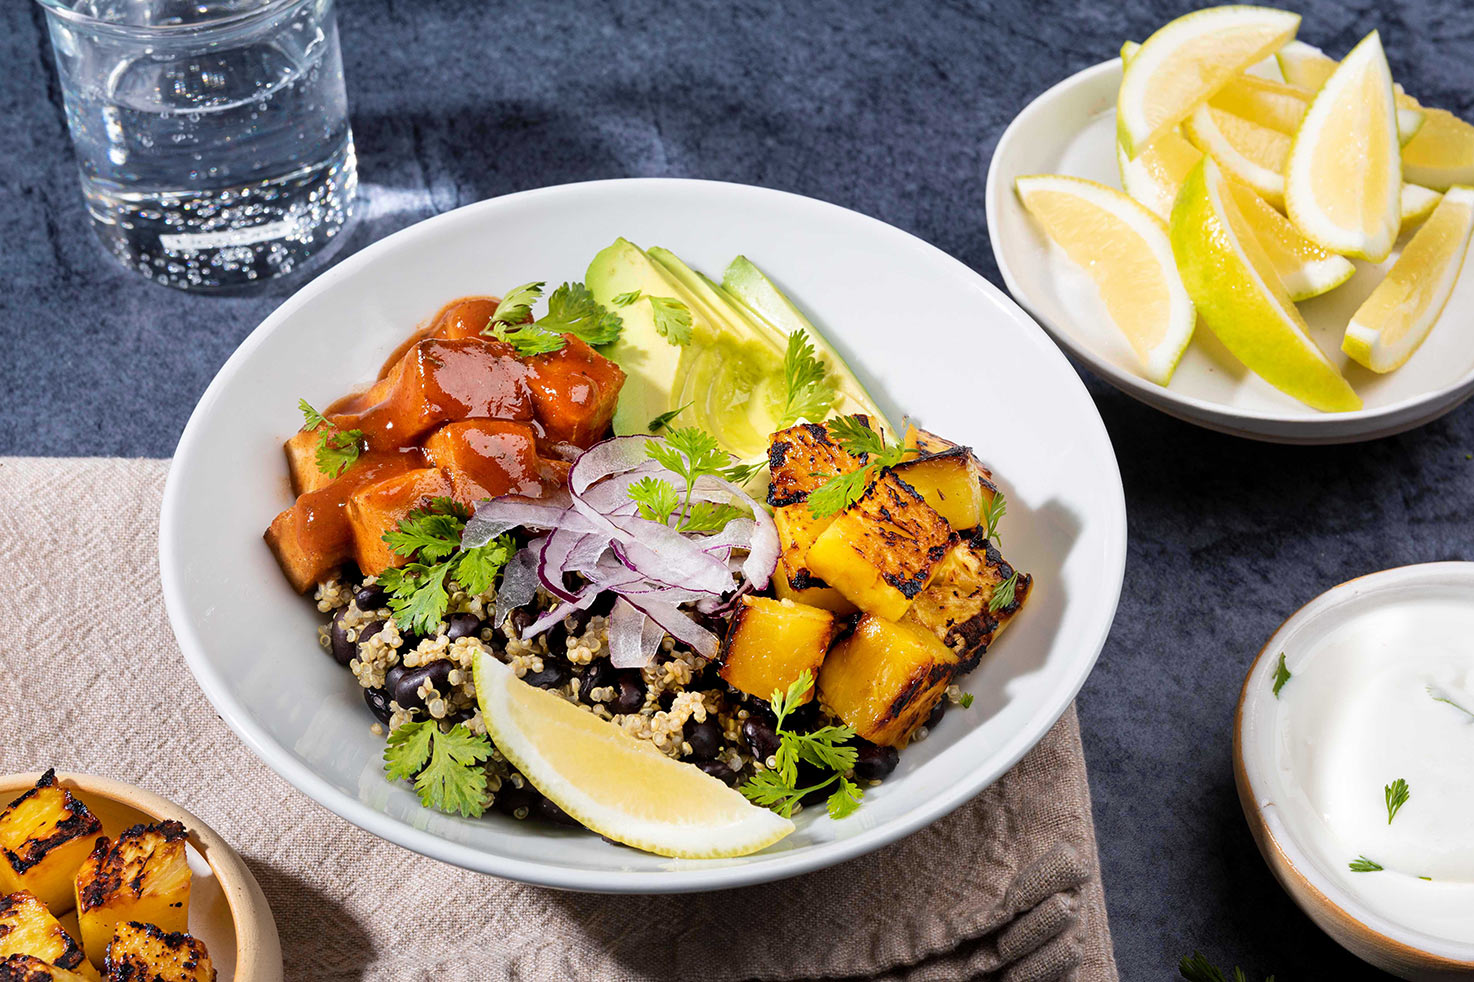 Burrito Bowl is ready for munching served with greek yogurt, lemon wedges, cilantro and fried tofu on the side | Hurry The Food Up